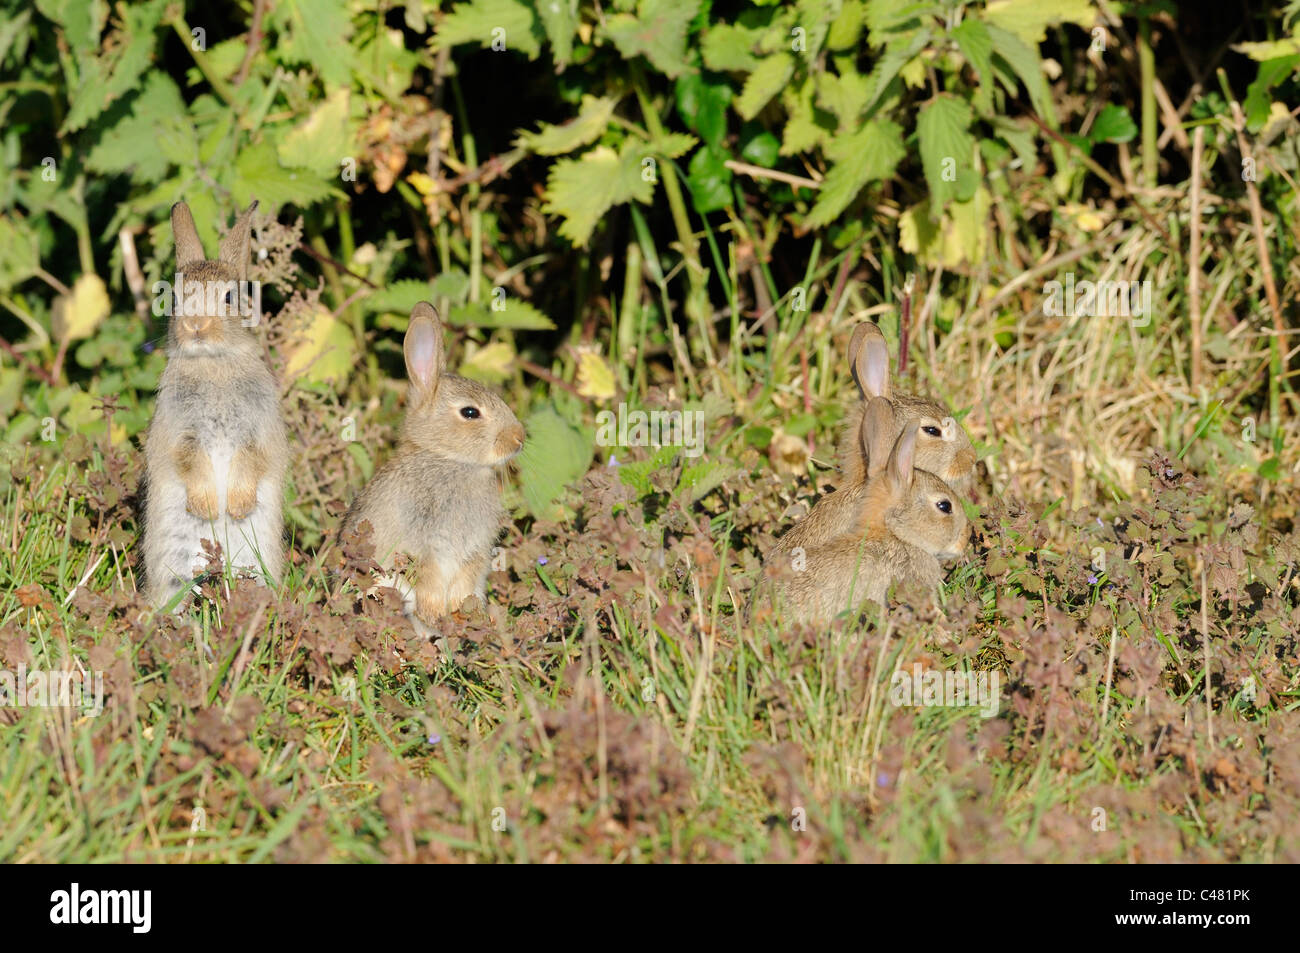 European Rabbits, oryctolagus cunniculus, youngsters outside warren, Norfolk, England May - Stock Image